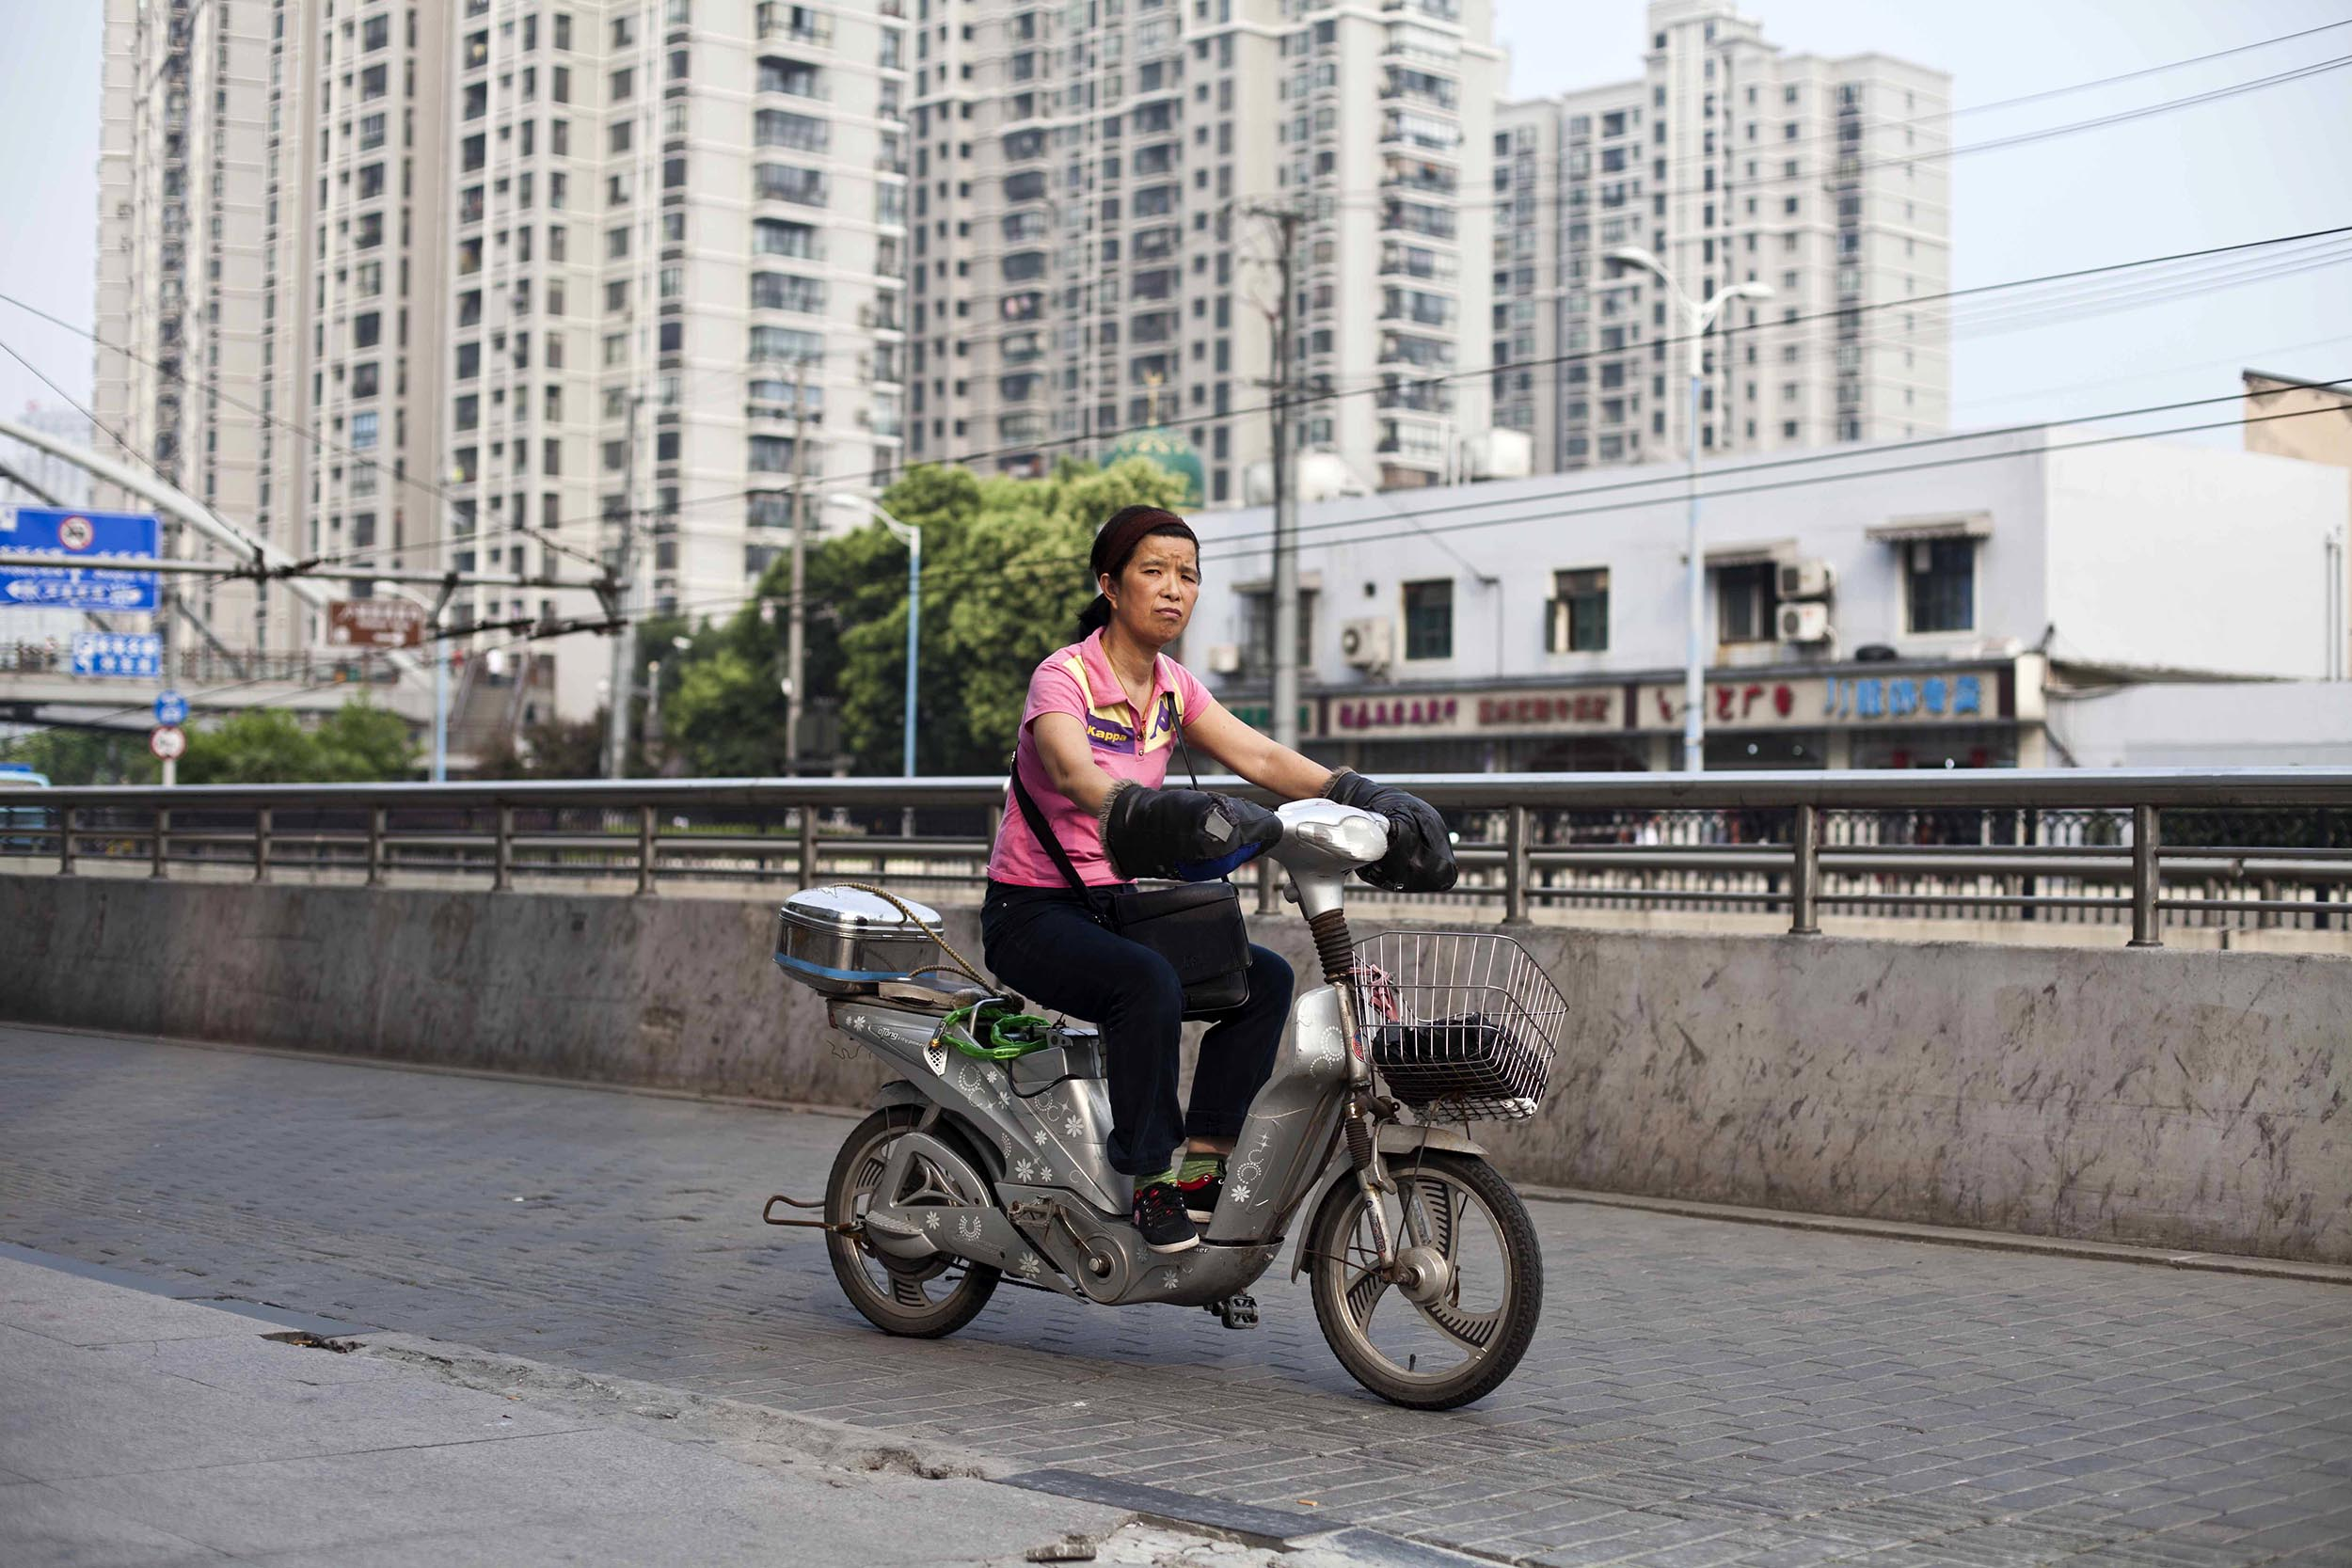 A photograph of woman riding a scooter in Shanghai, China  Photography for personal project